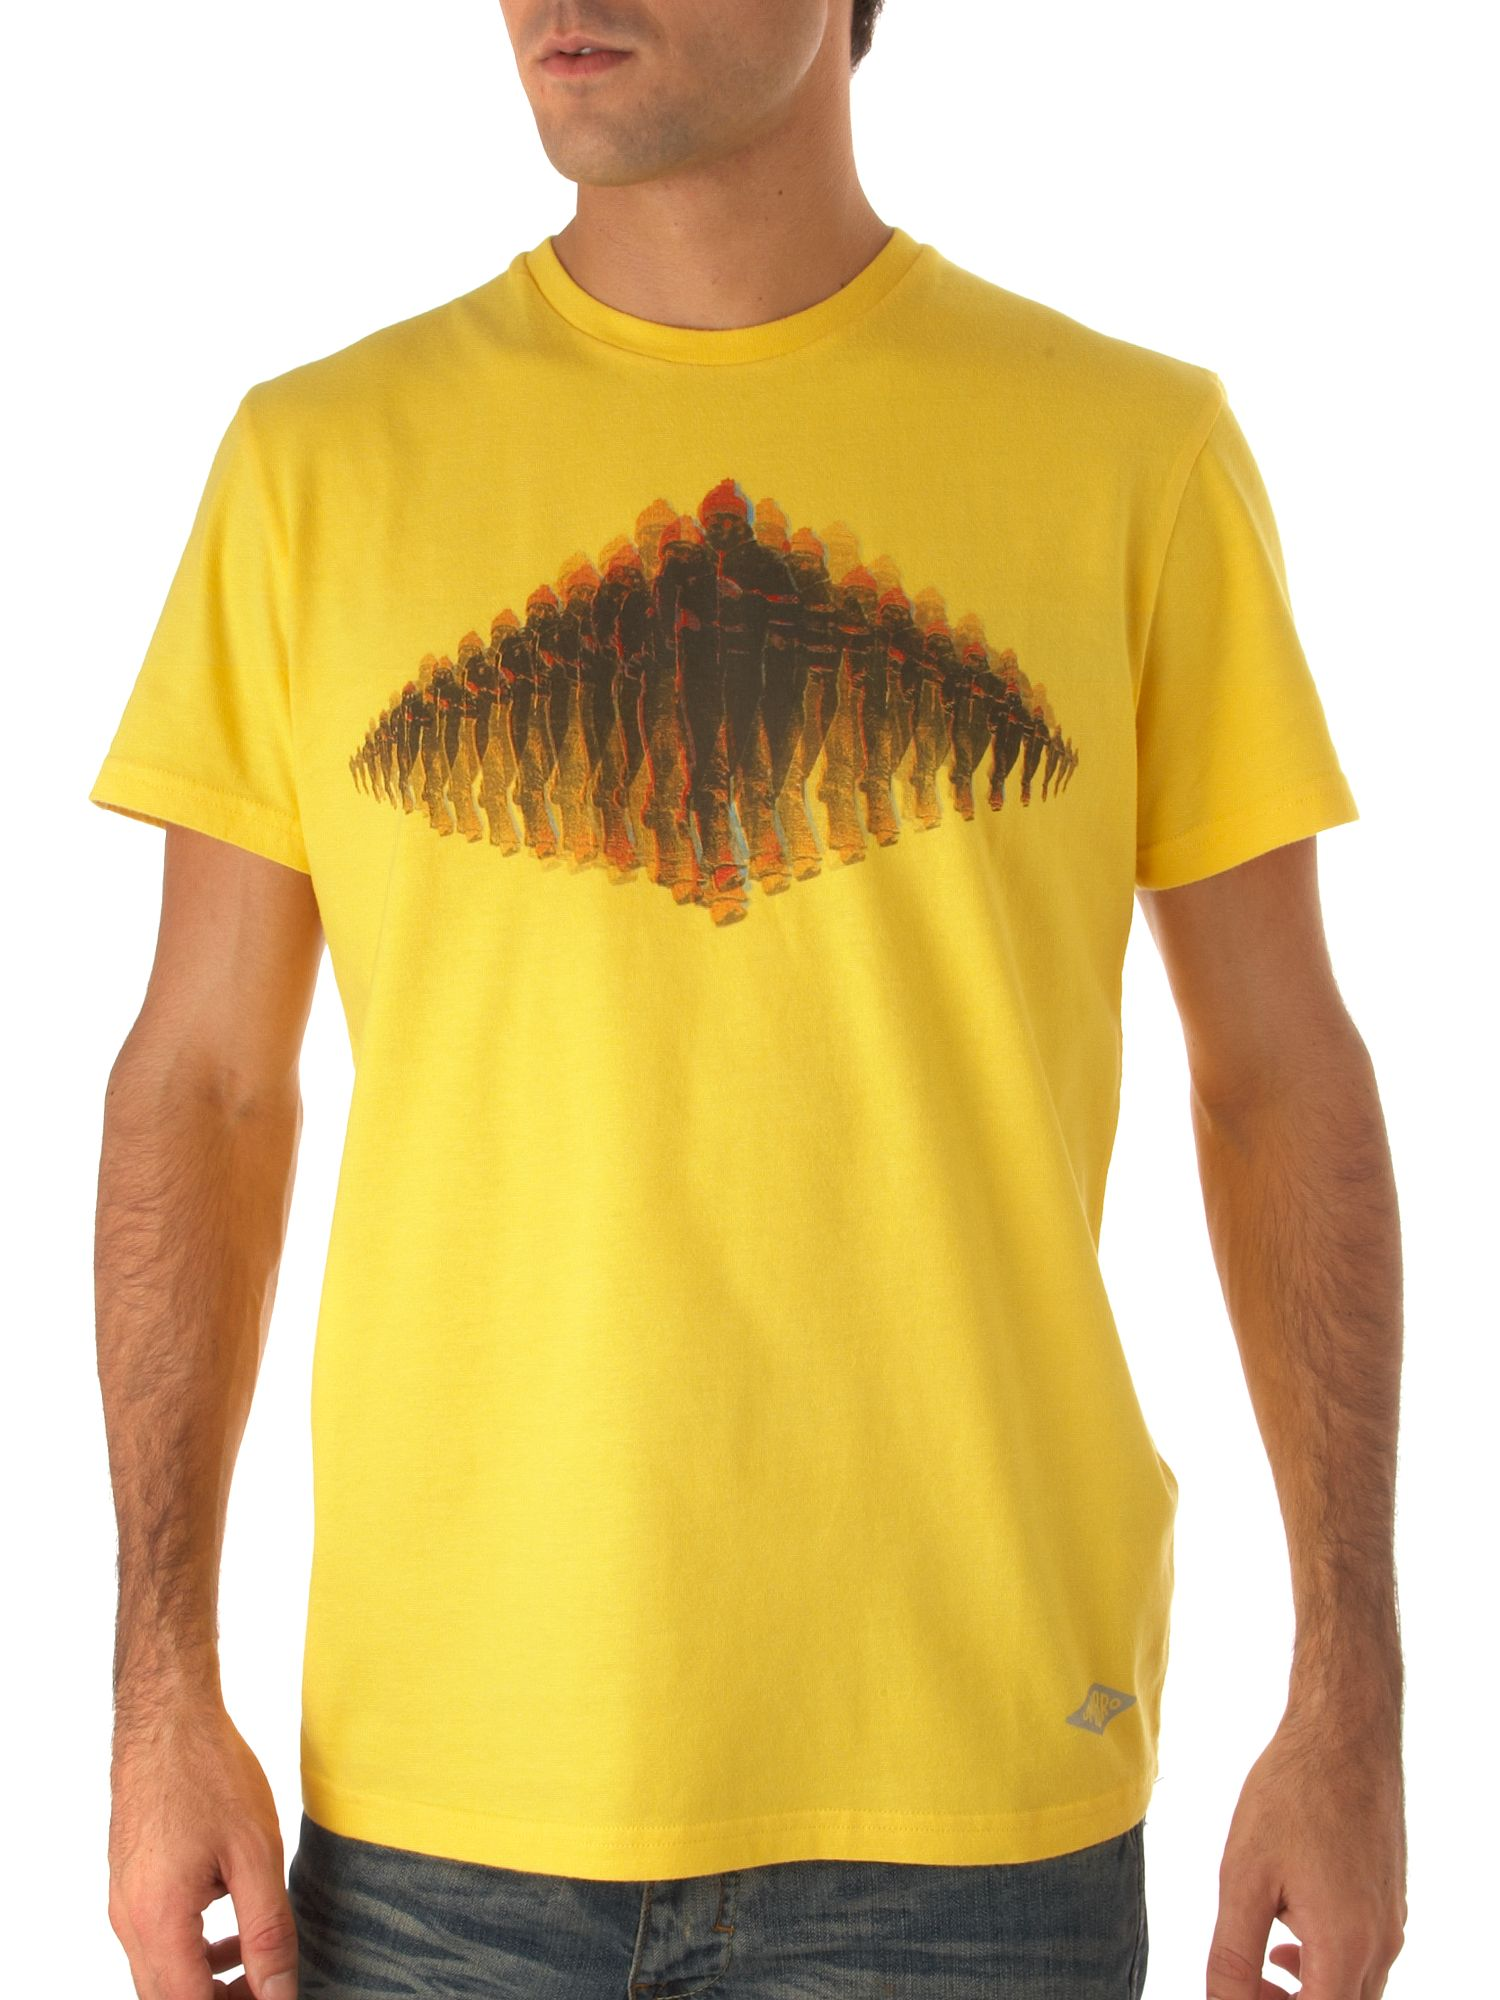 Umbro Hollogram tee product image